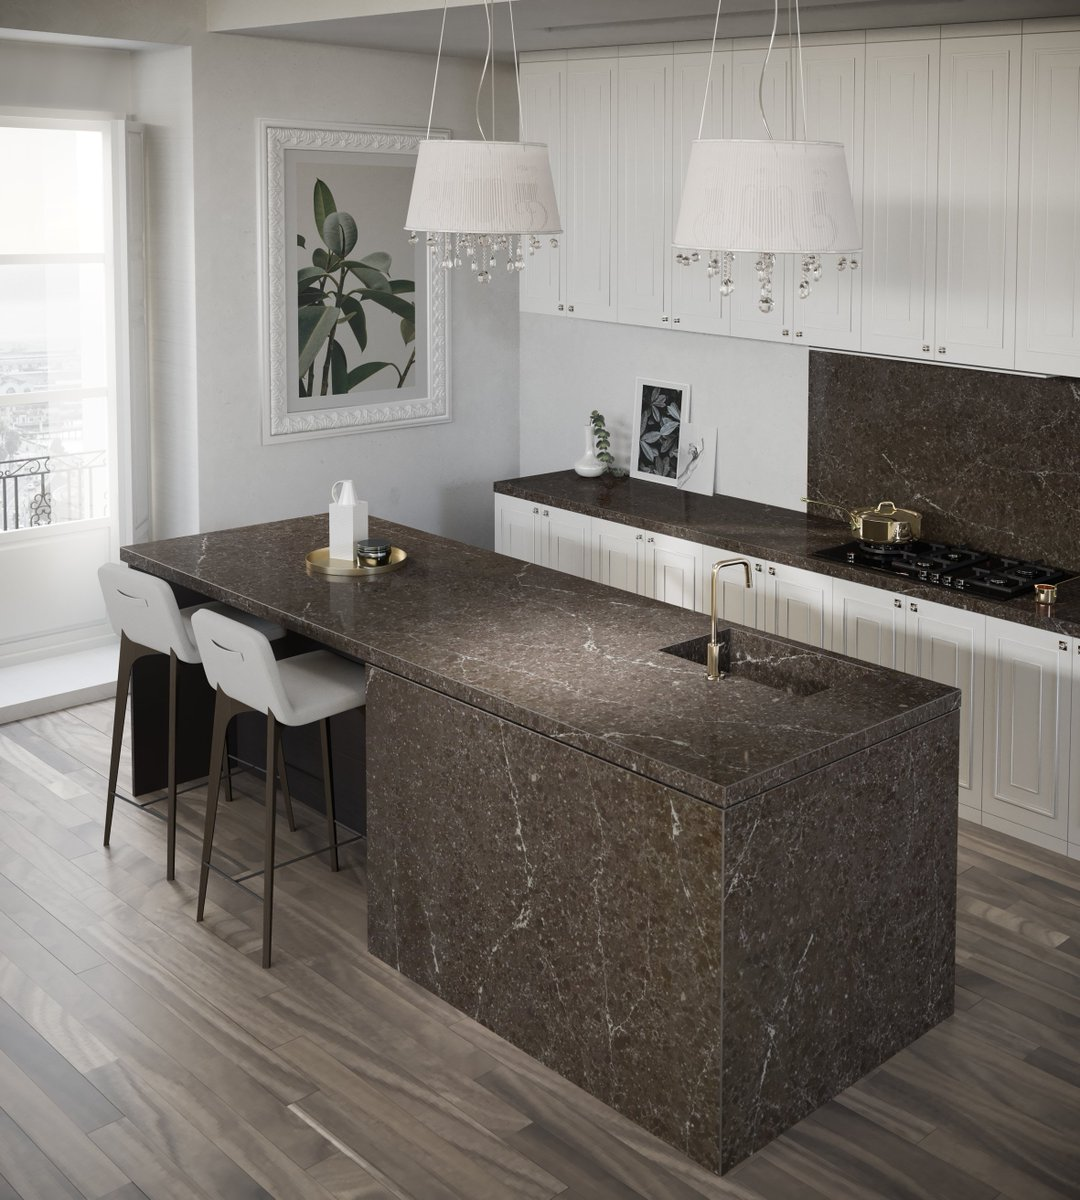 We are delighted to have launched five stunning new additions to our #Silestone Eternal Collection at #kbb18 - inspired by the most coveted marbles, the five surfaces offer beautiful aesthetics and practical functionality